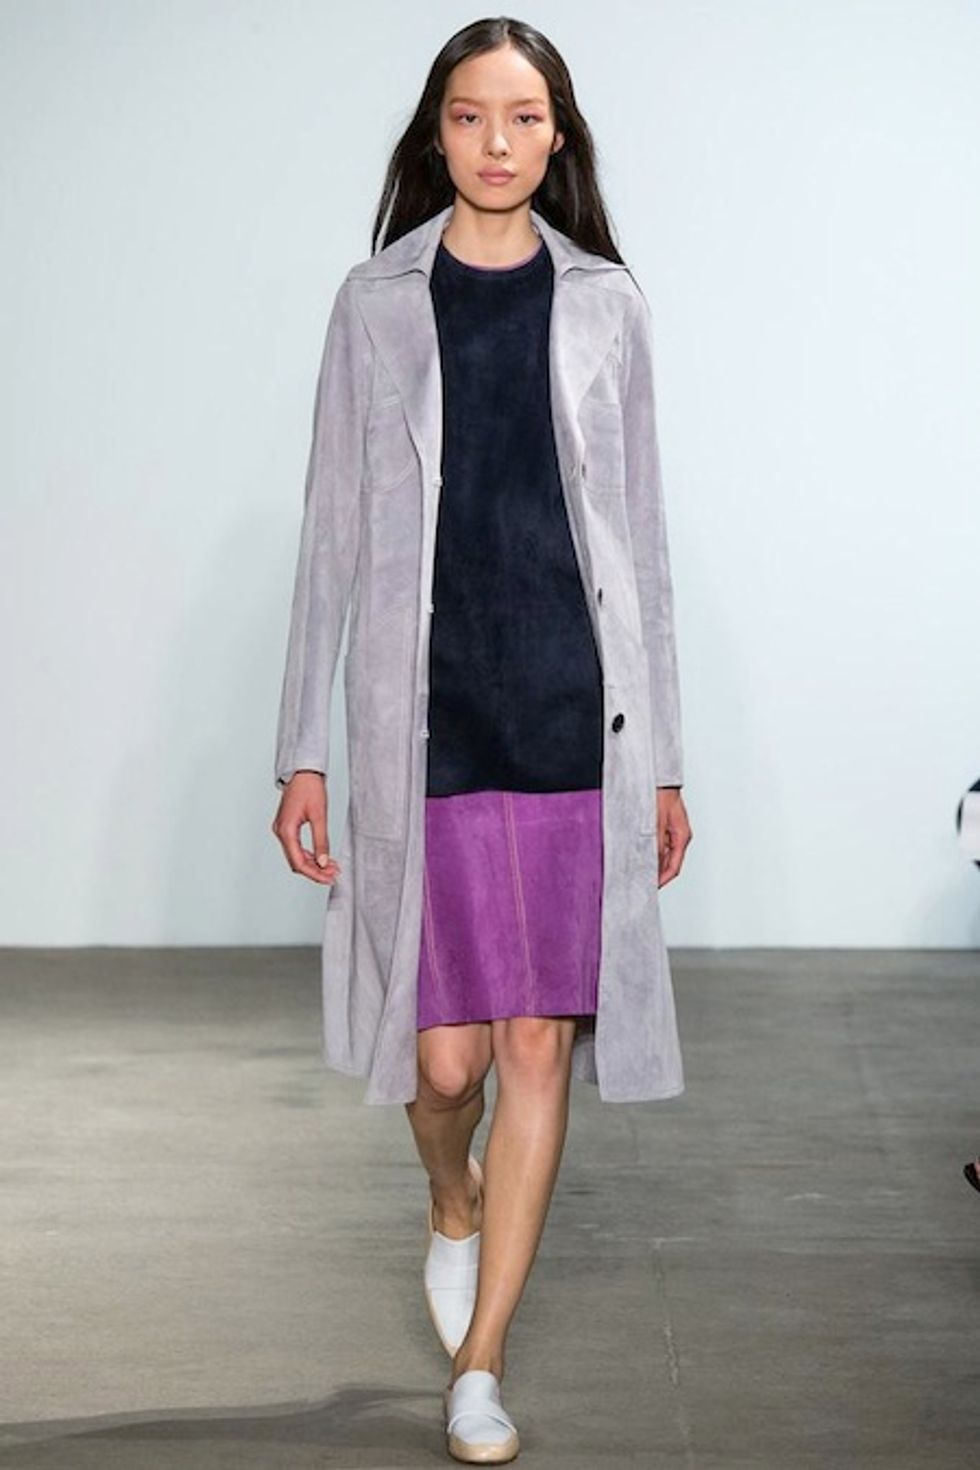 Our Favorite Looks from NYFW: Day 4